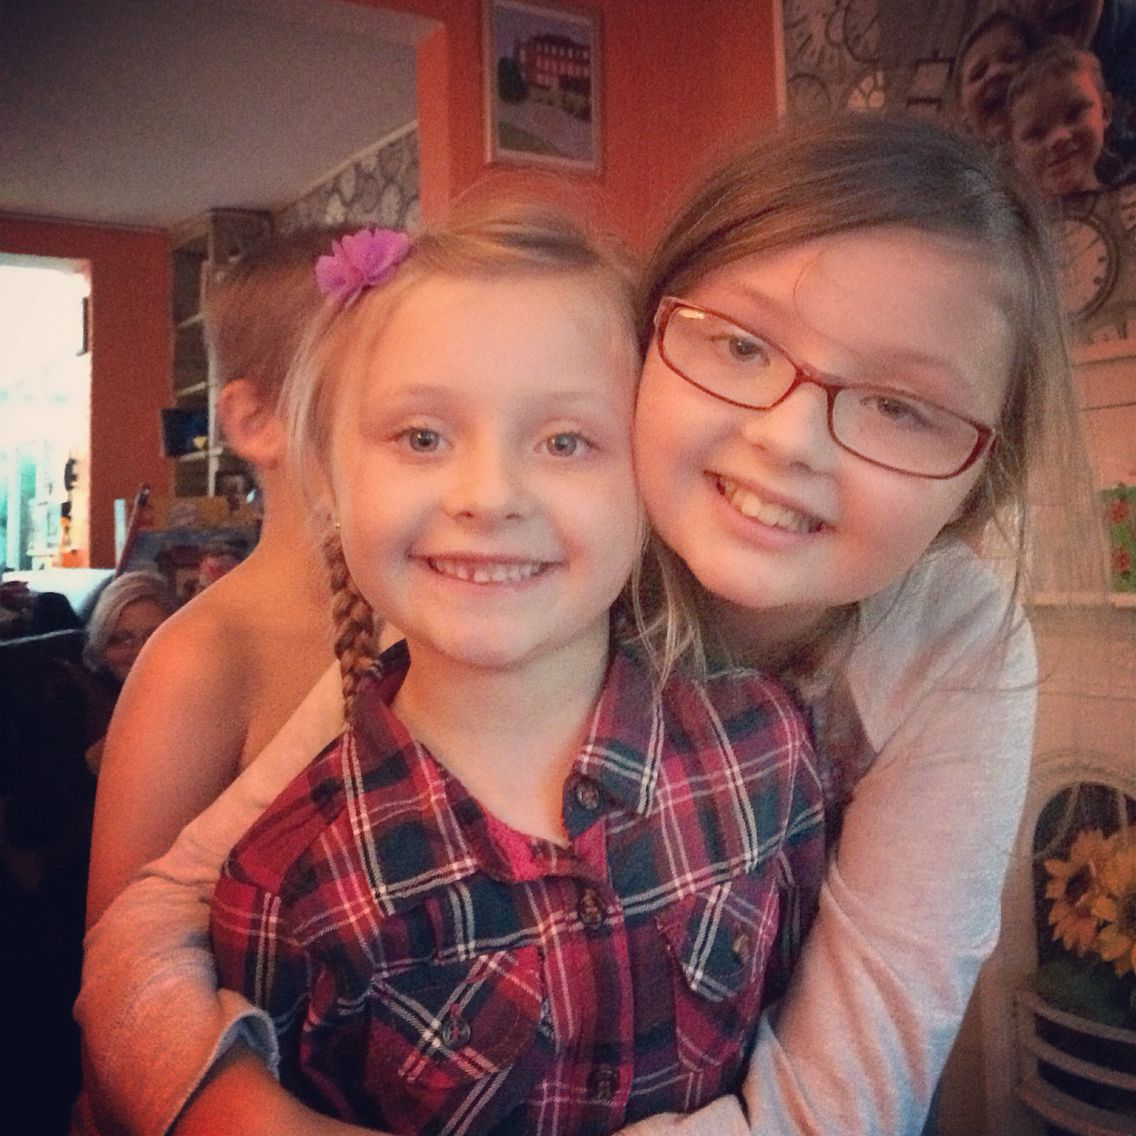 Our cute cute nieces Lottie and Gracie ❤️